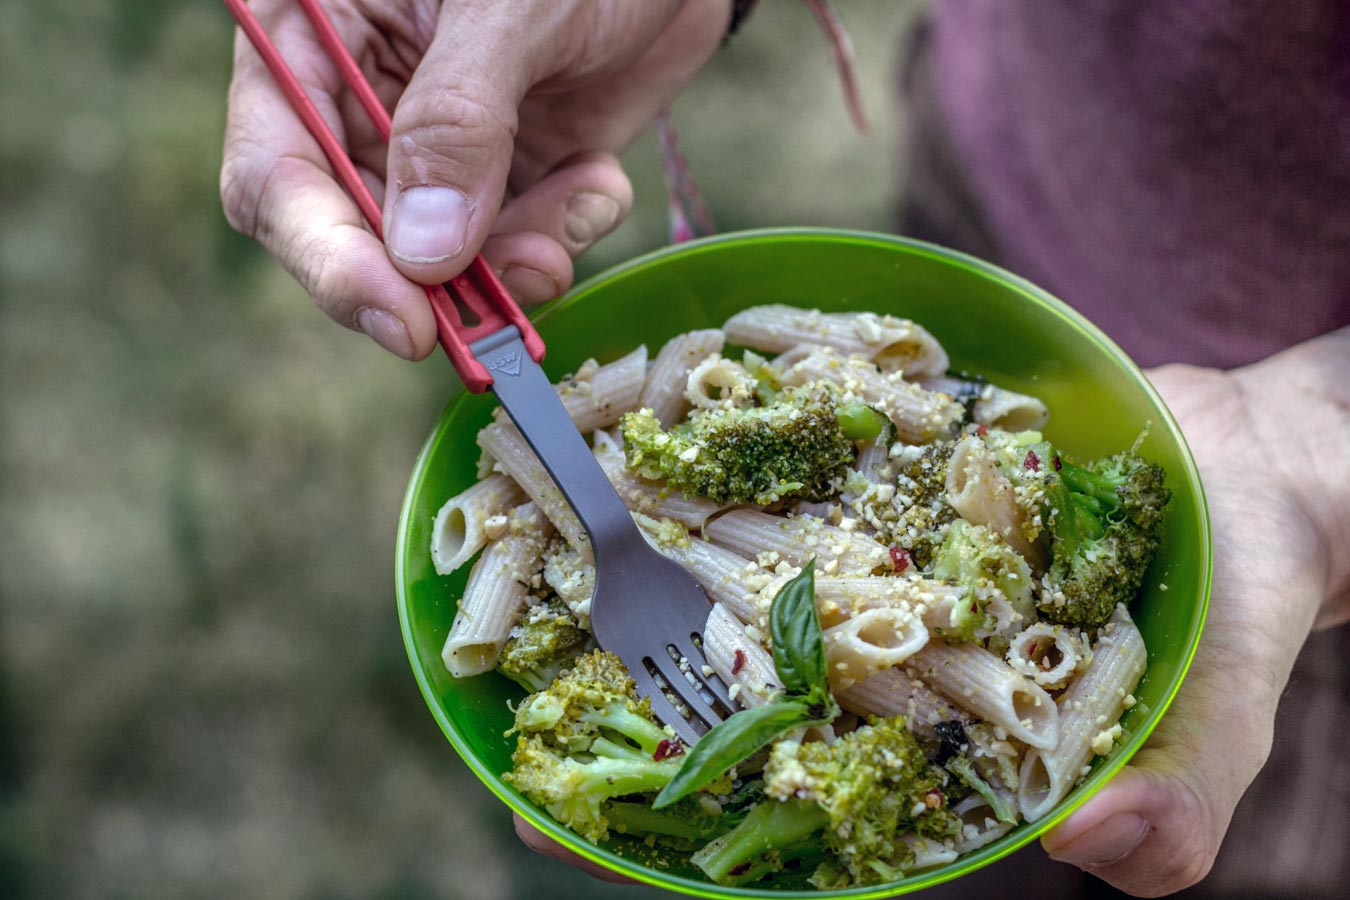 Lemon Broccoli Pasta in a green camping bowl.